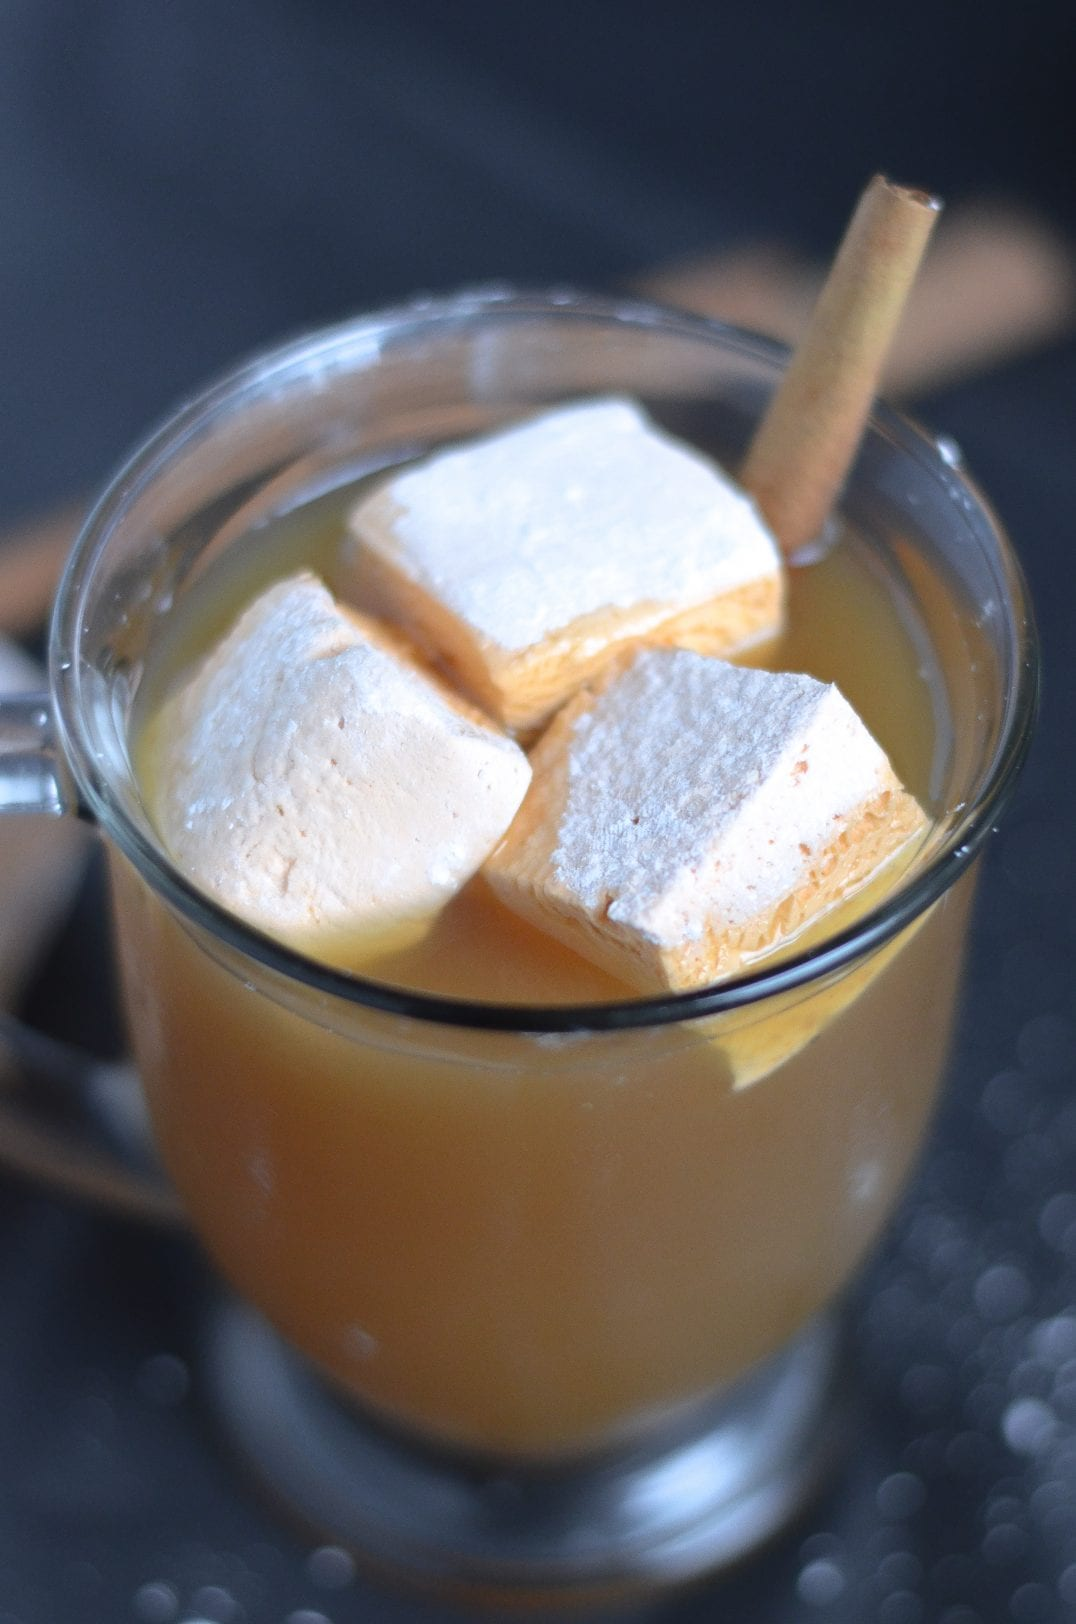 marshmallows sitting in a glass of apple cider